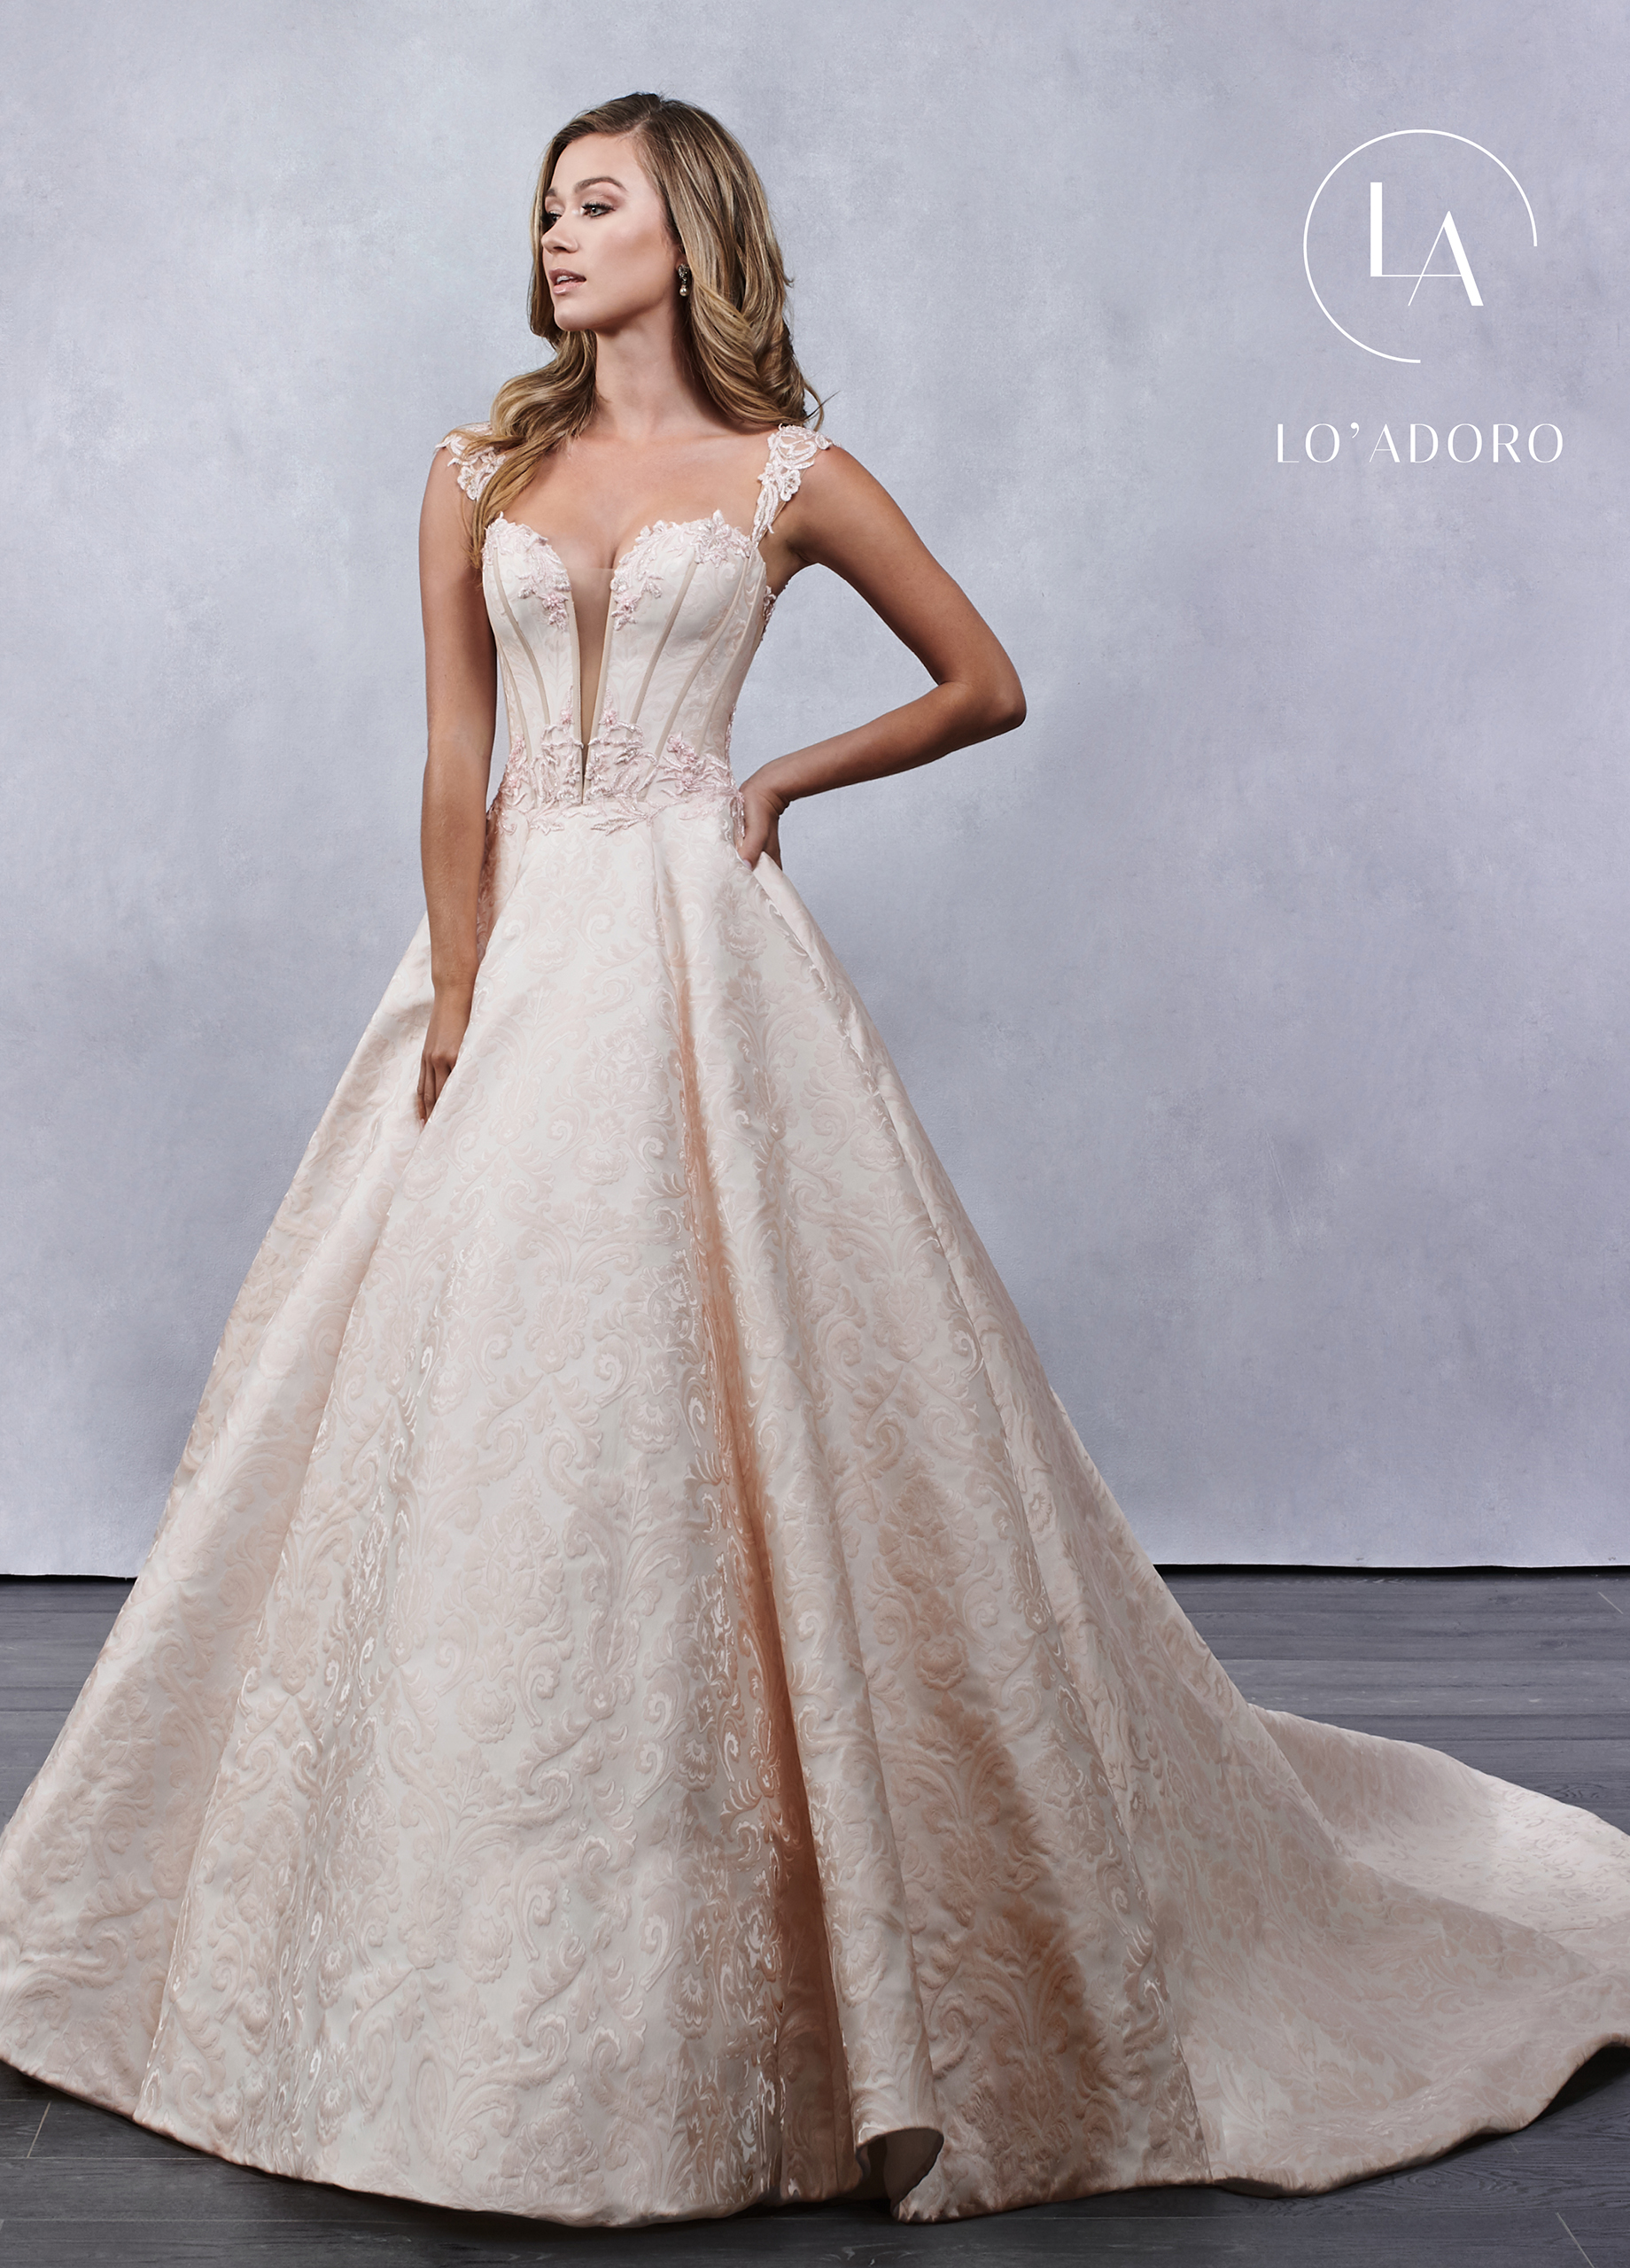 Sweetheart A-Line Lo' Adoro Bridal in Nude Color